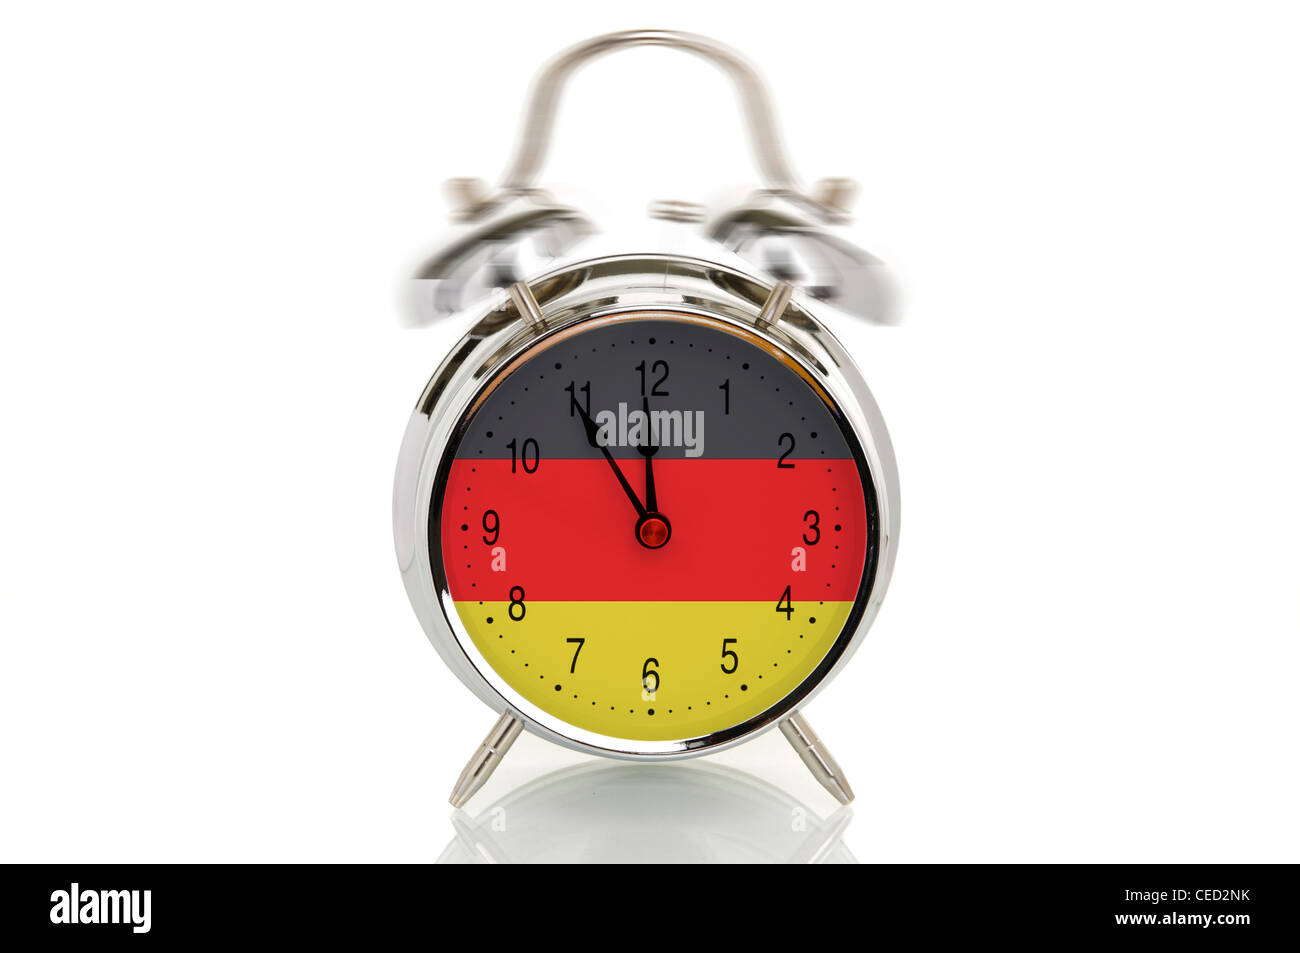 Ringing alarm clock with the German national flag, time set at five minutes to twelve, symbolic image for crisis - Stock Image